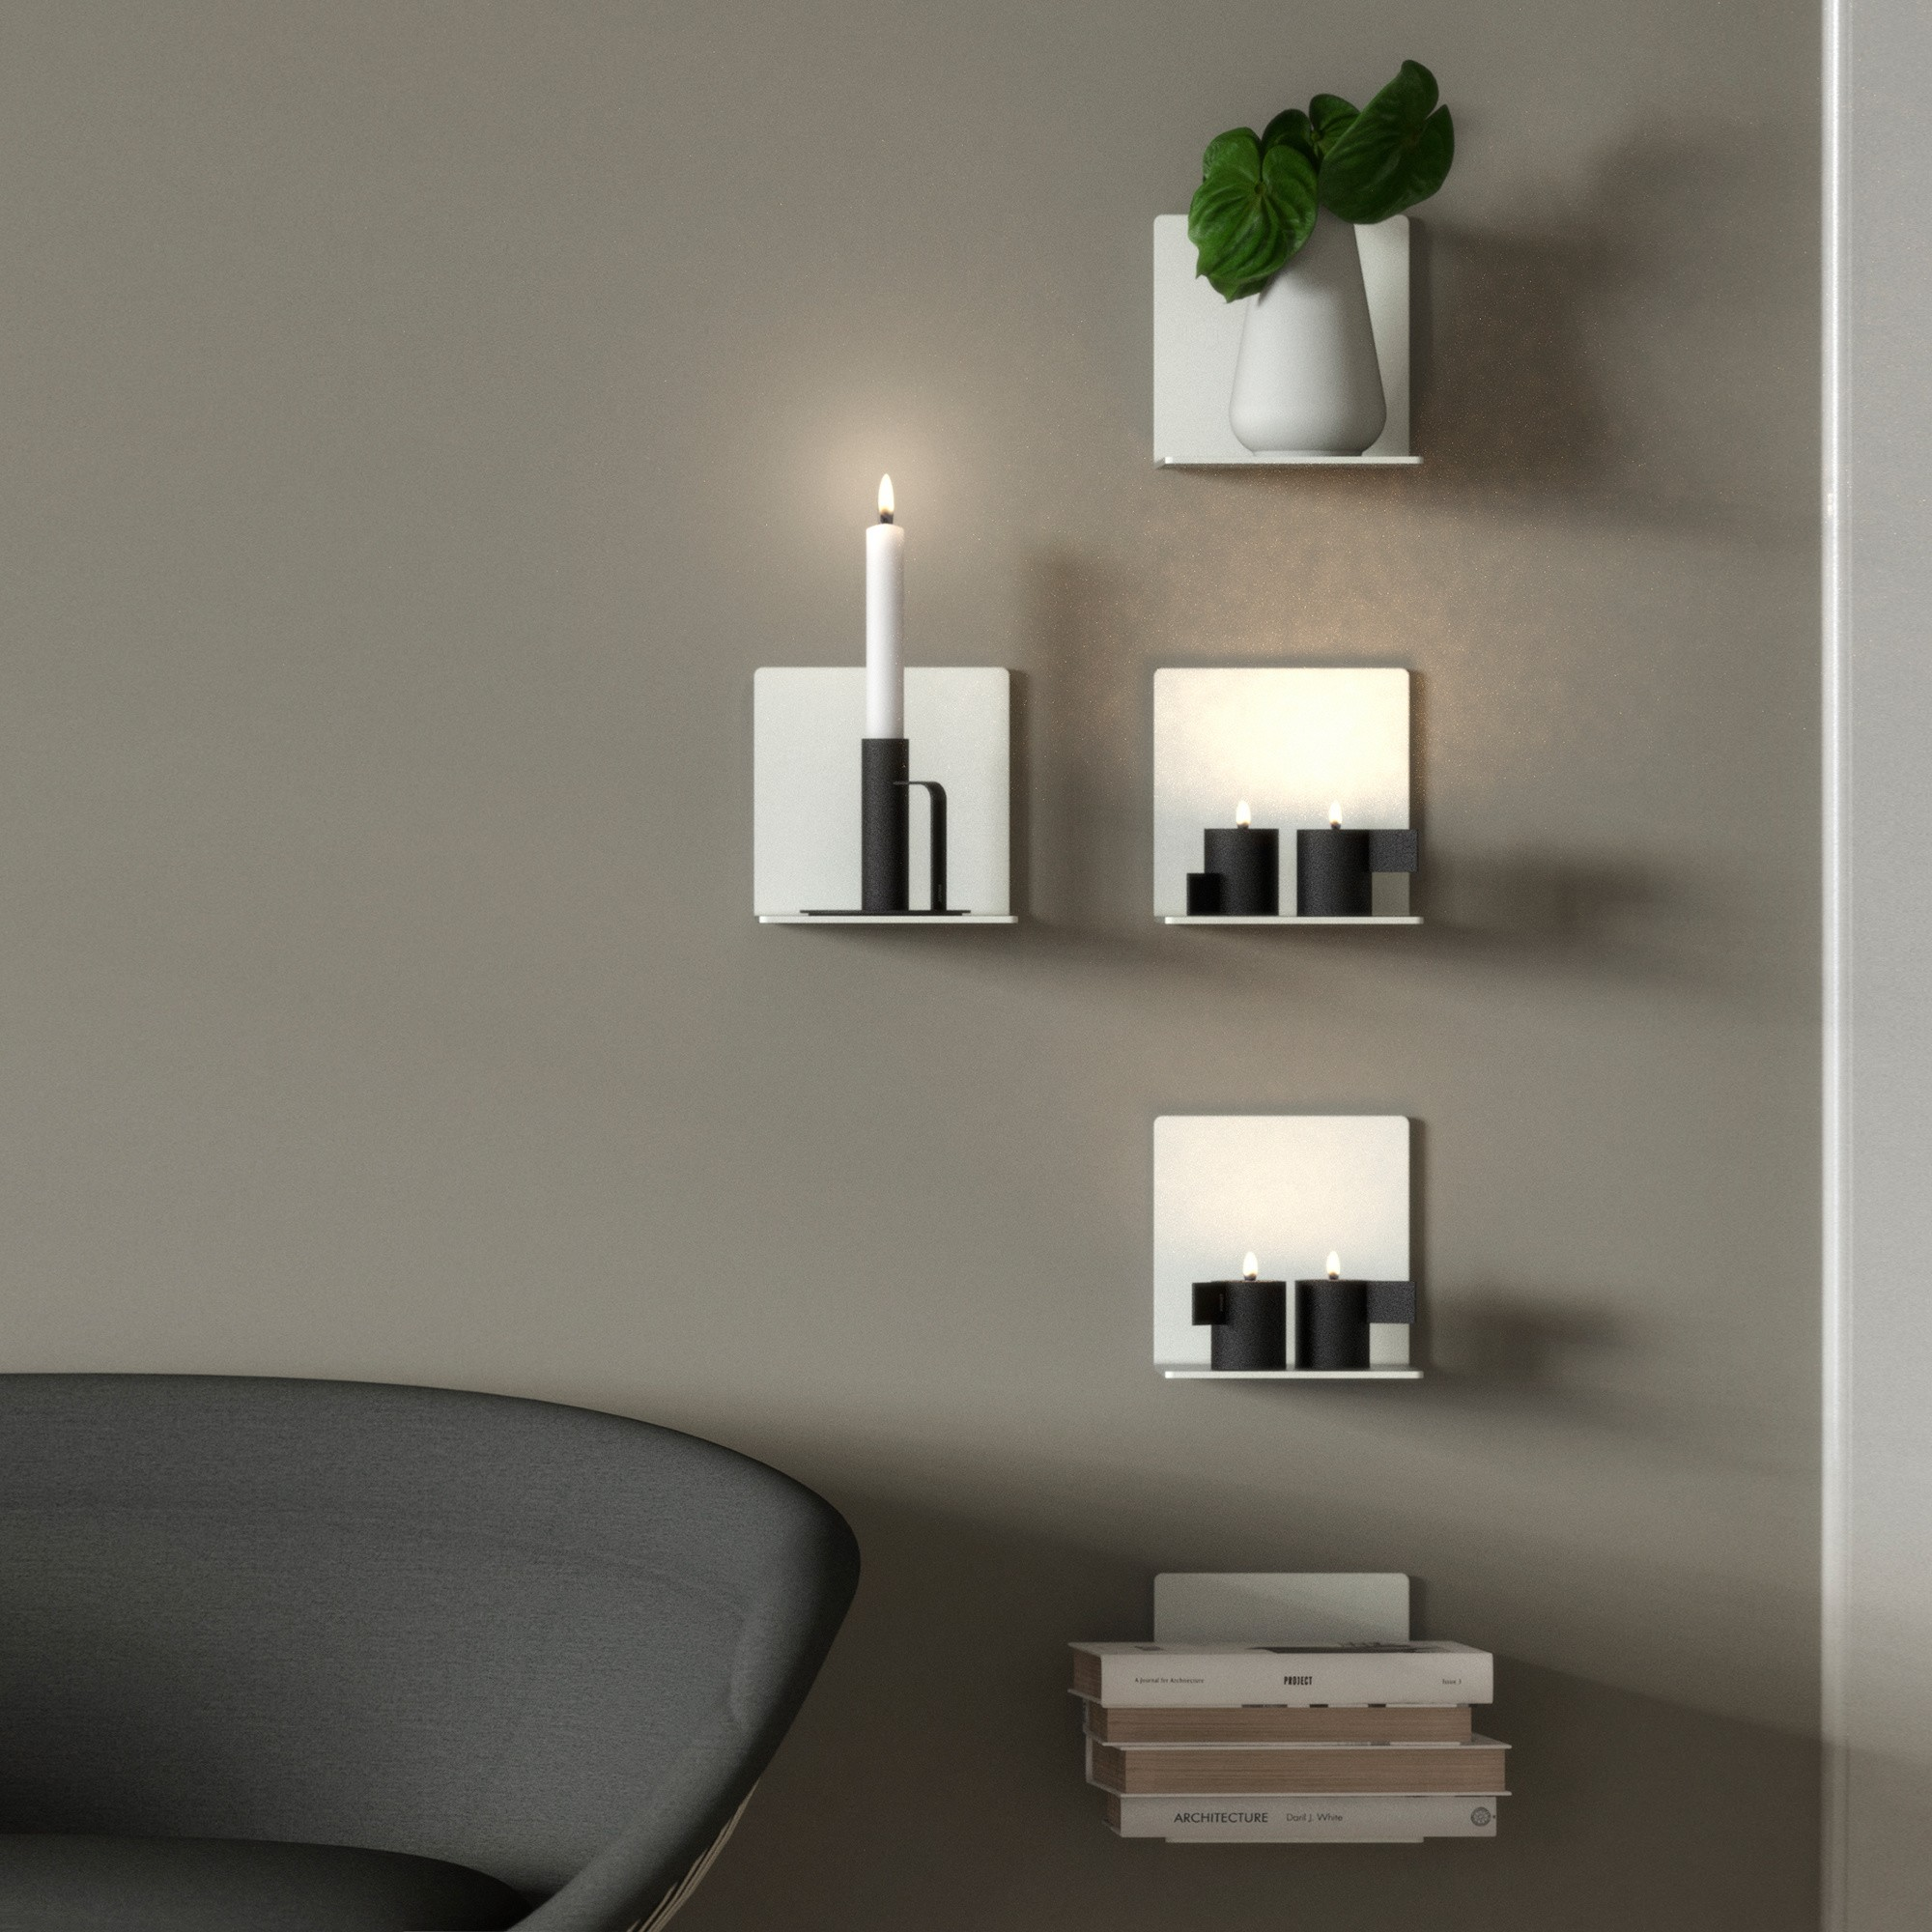 Frost Unu 4020 Wall Shelf 15x15x15cm Ambientedirect